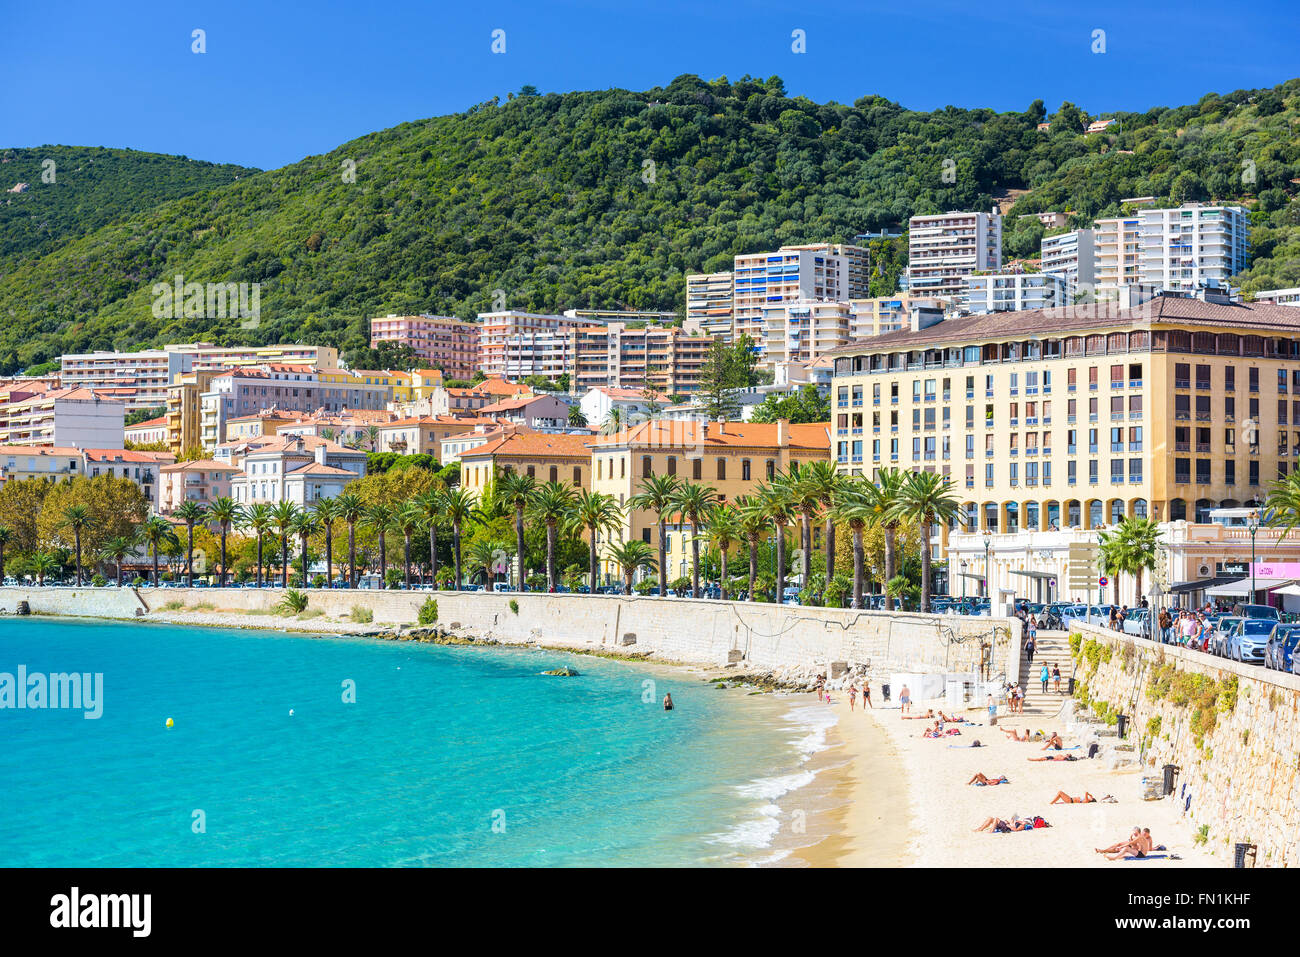 AJACCIO, FRANCE - OCTOBER 29, 2014: Beachgoers on in the Town of Ajaccio on the west coasat of the Corsica Island. - Stock Image